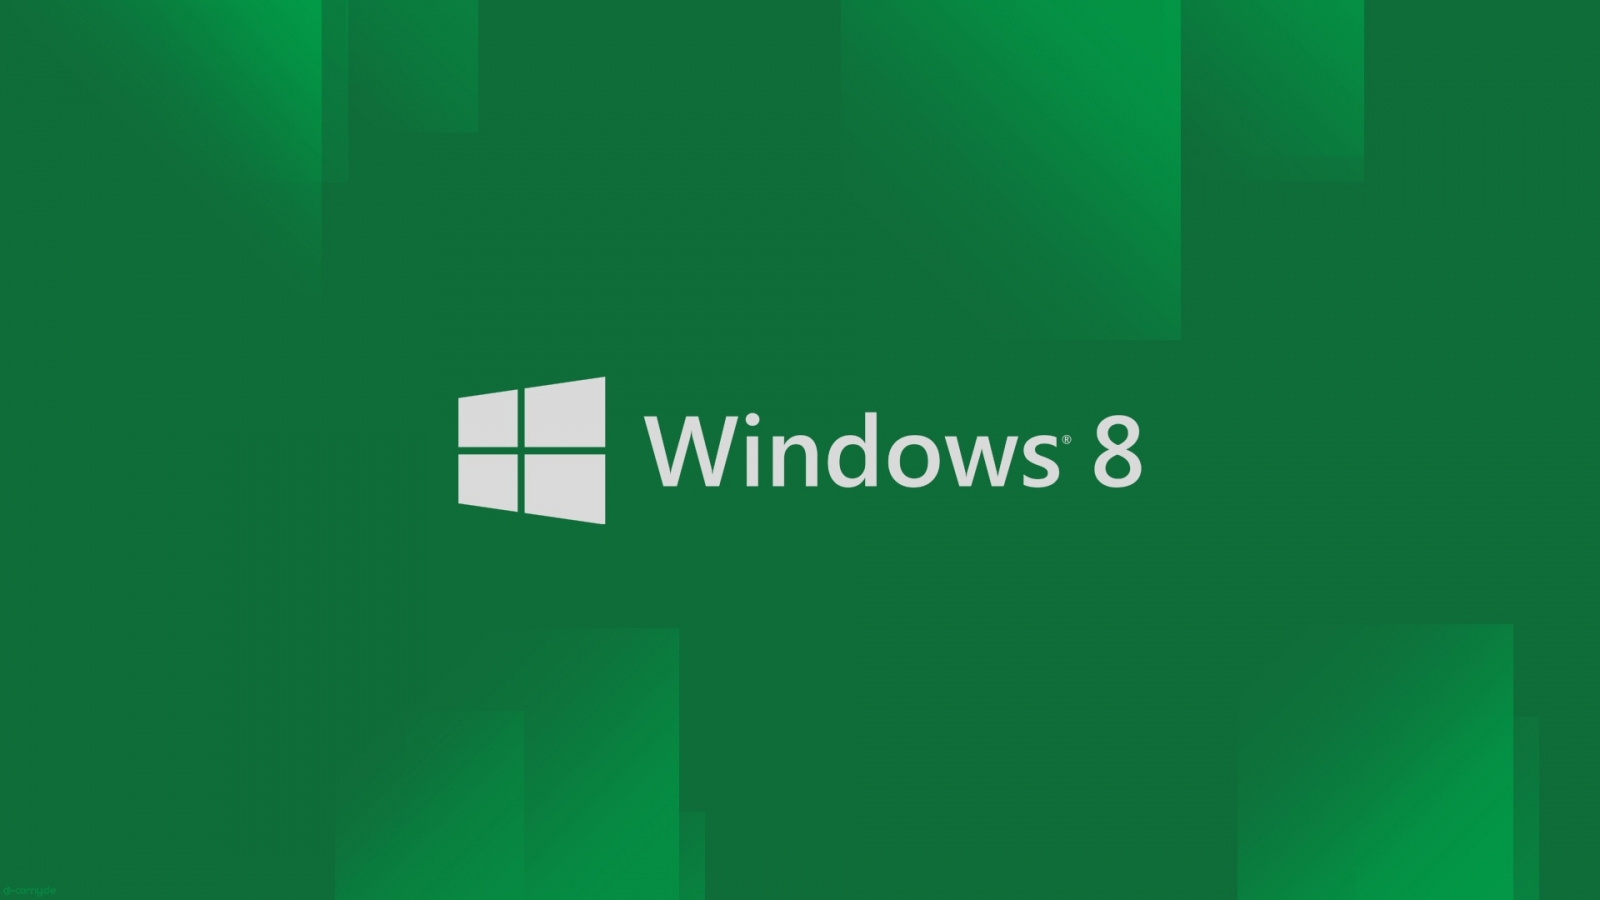 Windows 8 HD wallpapers - MYTECHSHOUT